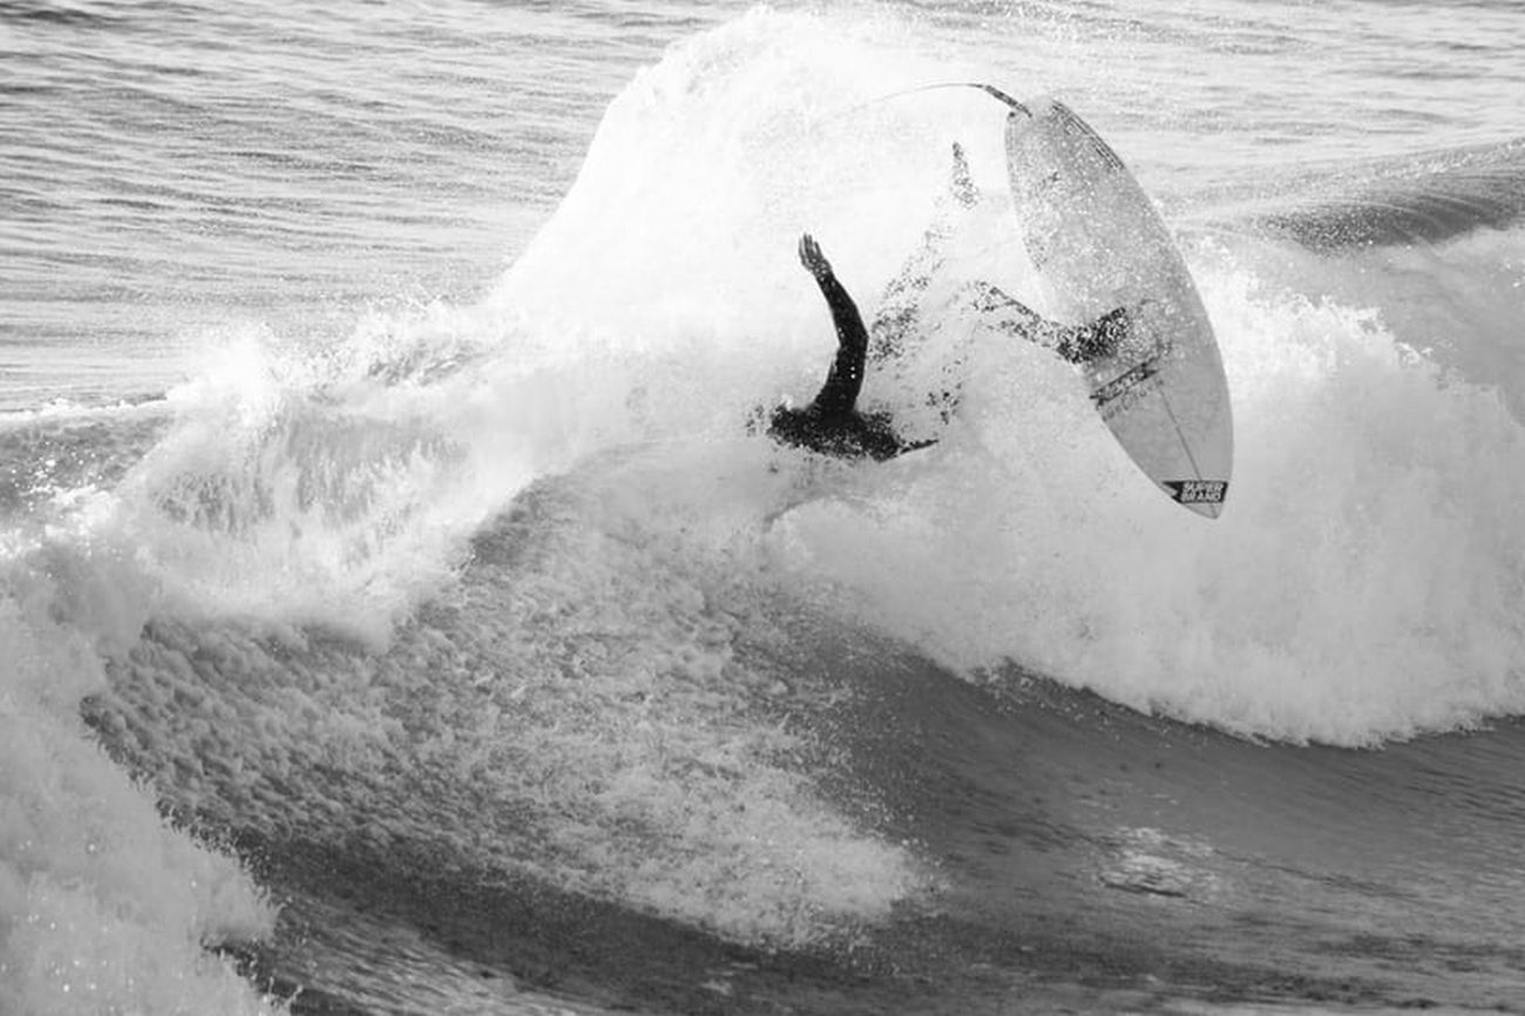 surfing, biocentrism, nature, anthropocentric, eco-friendly, mindset, nature care, protection, superiority, human-centred, flow state, meditation, self-growth, surf industry, capitalism, spirituality, luxiders magazine, surf sport